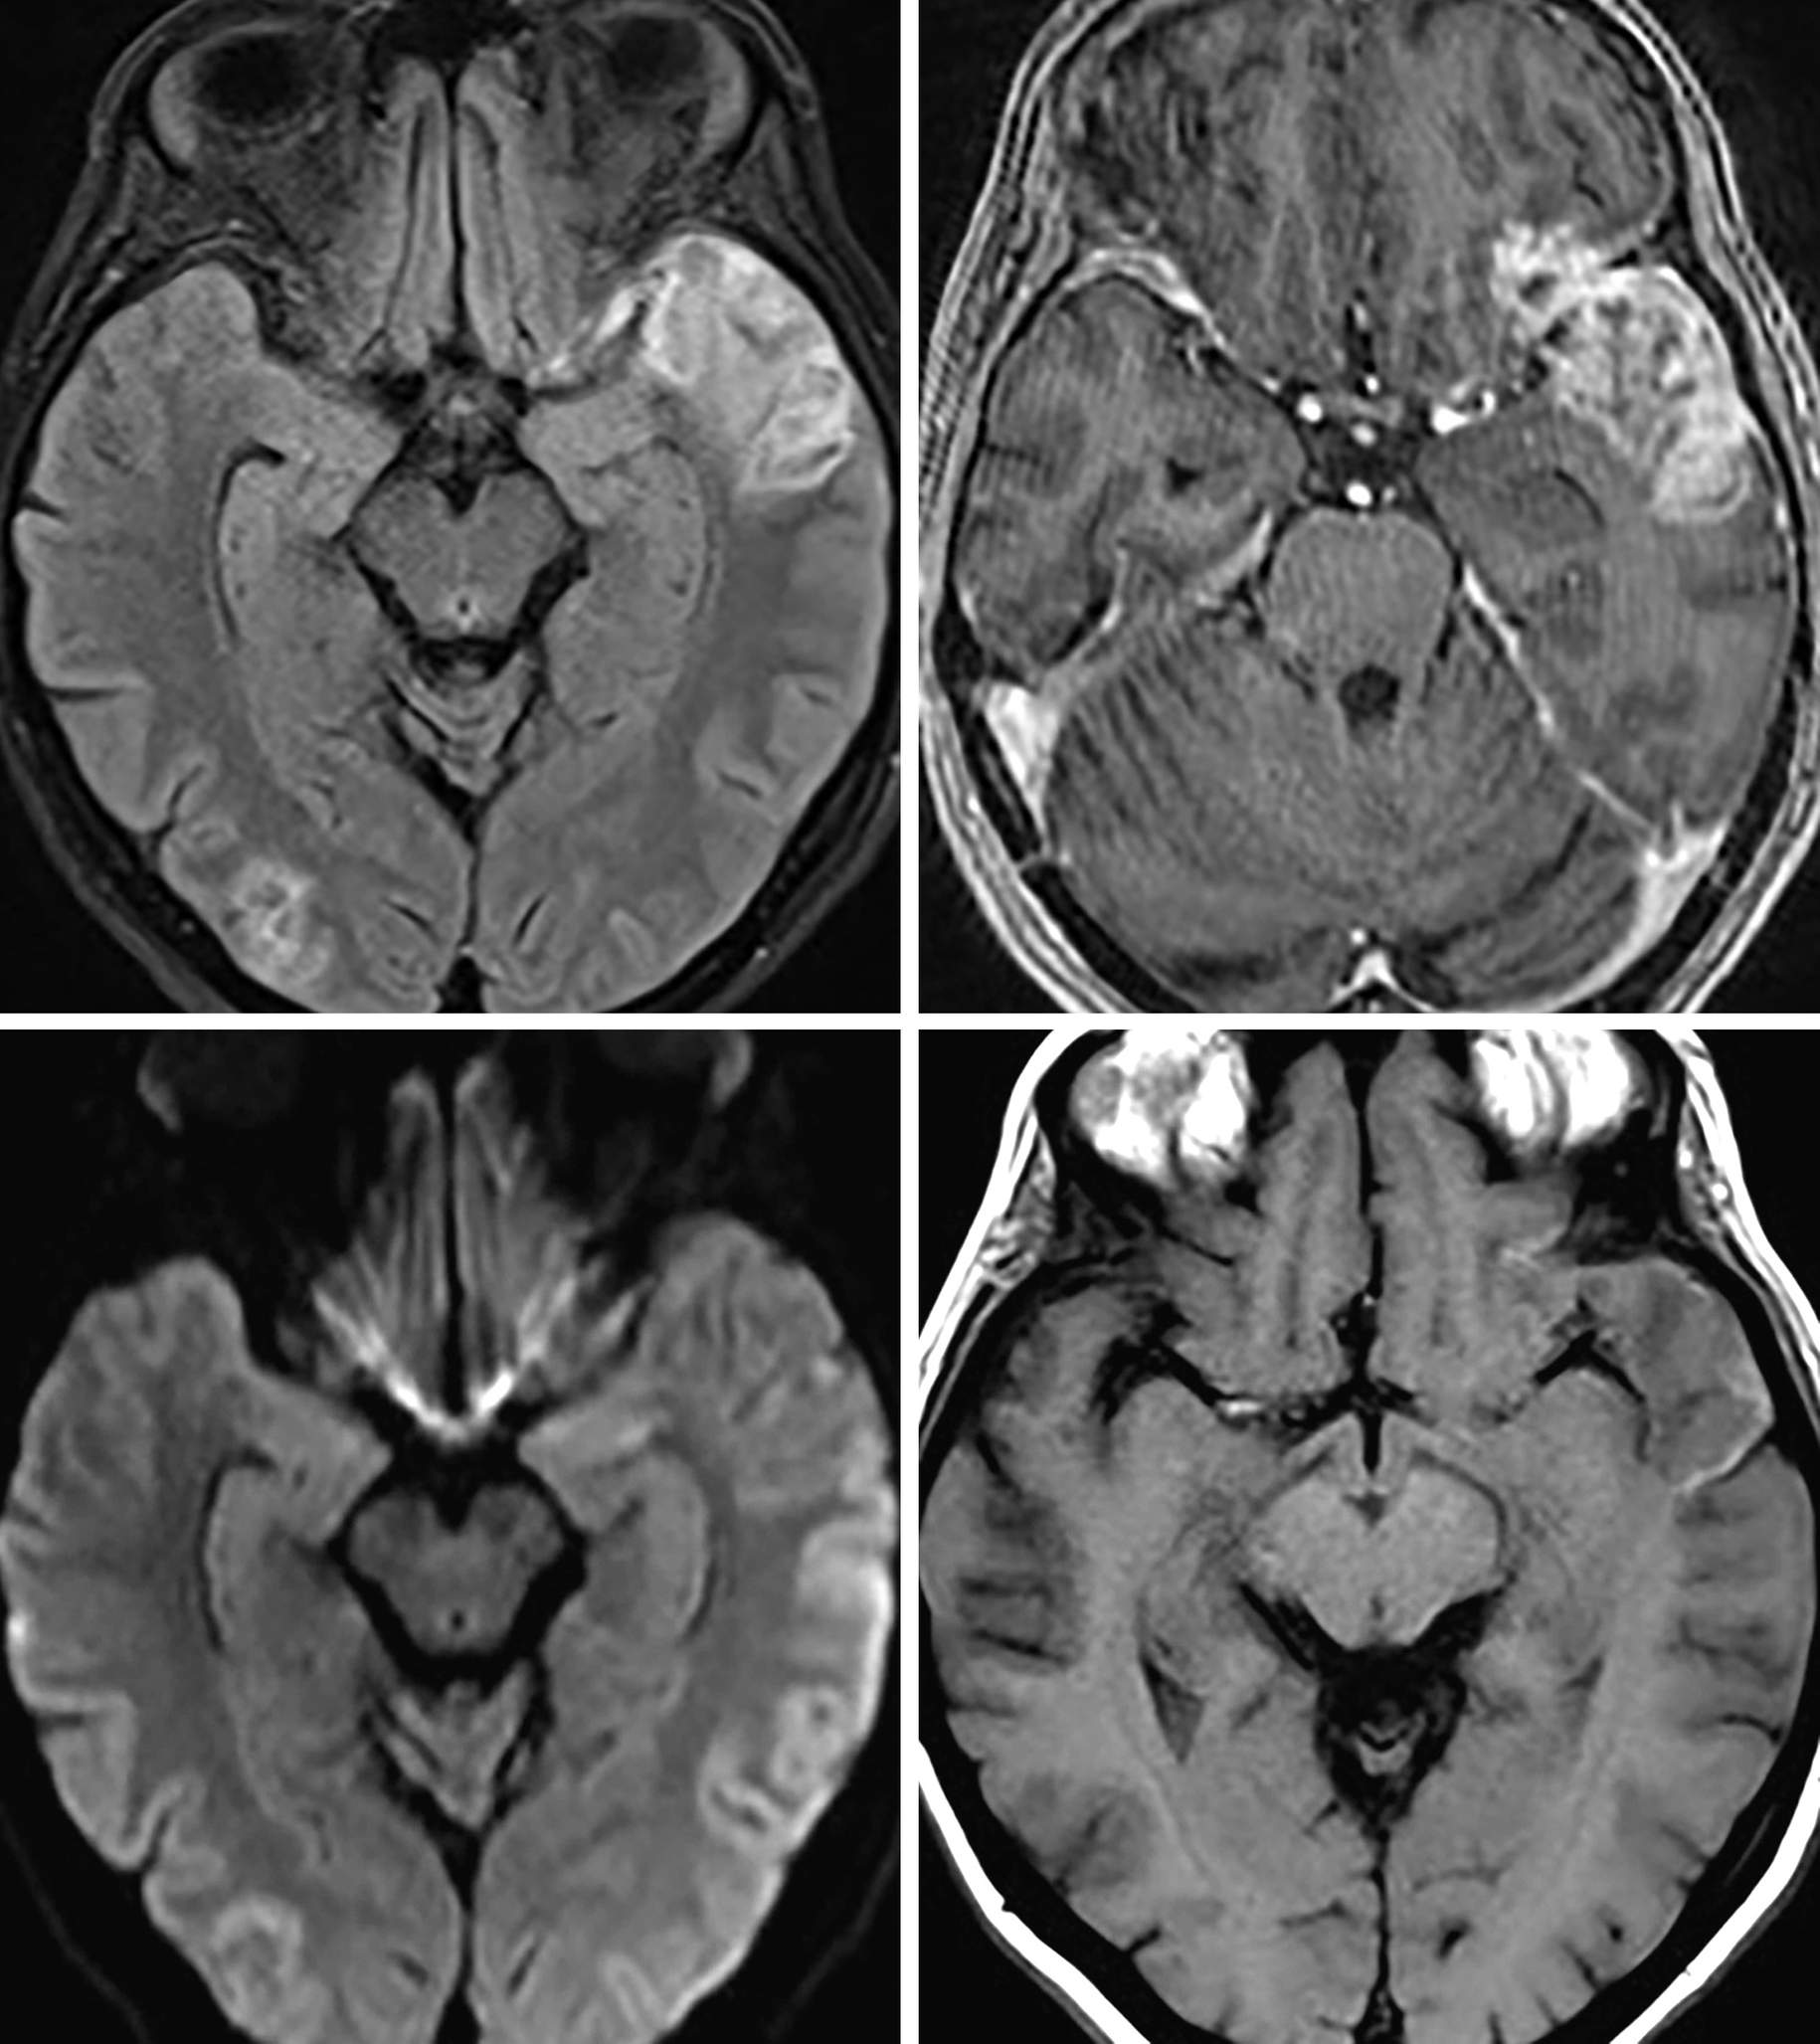 Figure 1: Masslike, cortical FLAIR hyperintense signal (top row left) with heterogeneous enhancement (top row right) in the anterior left temporal lobe and right occipital lobe. No evidence of reduced diffusivity on DWI (bottom row left). This presentation is often challenging and requires an appropriate history to make the correct diagnosis as a subacute infarction can commonly be mistaken for a neoplasm. The faint T1 hyperintensity in the cortex (bottom row right) can be a clue to cortical laminar necrosis of subacute infarct.